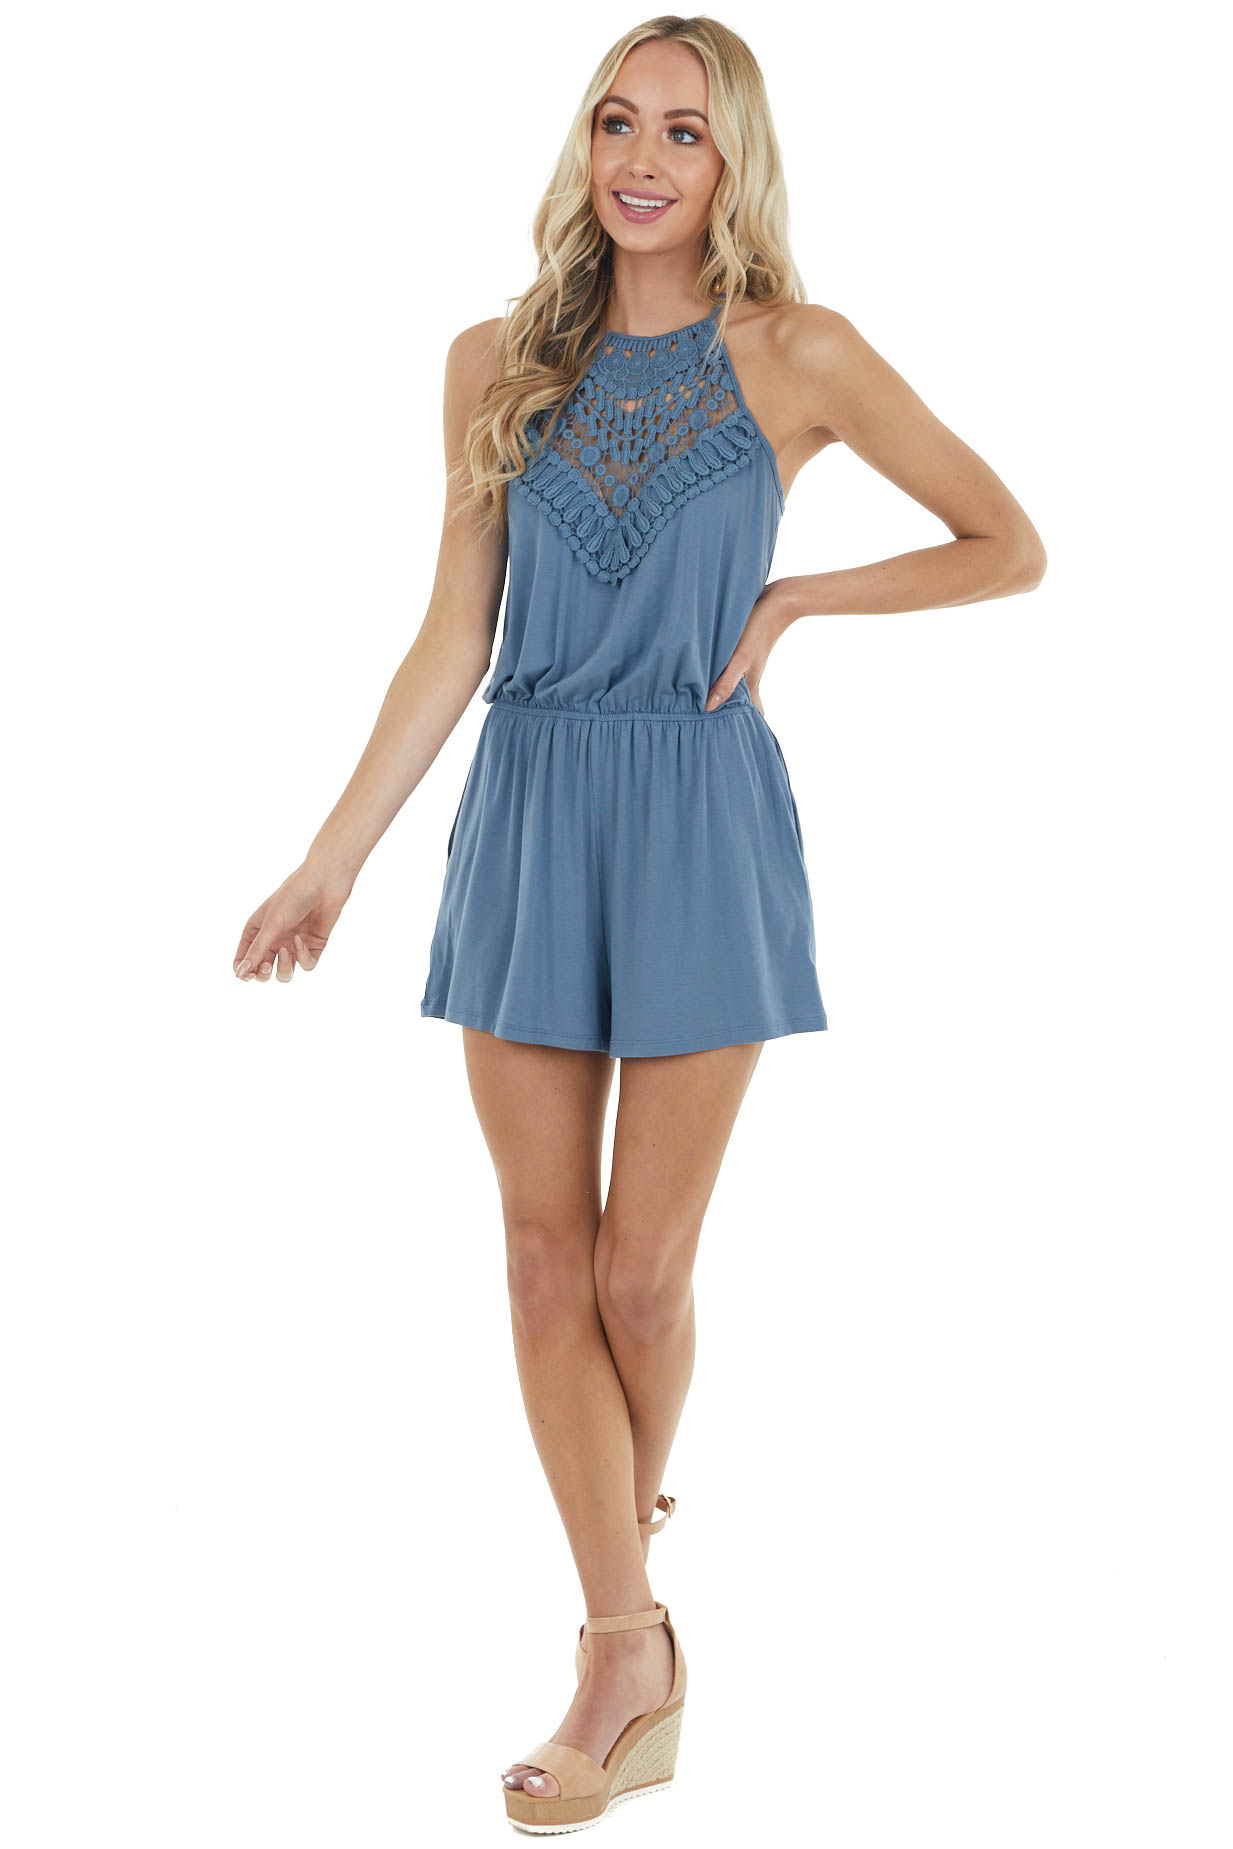 Slate Blue Spaghetti Strap Romper with Crocheted Lace Detail